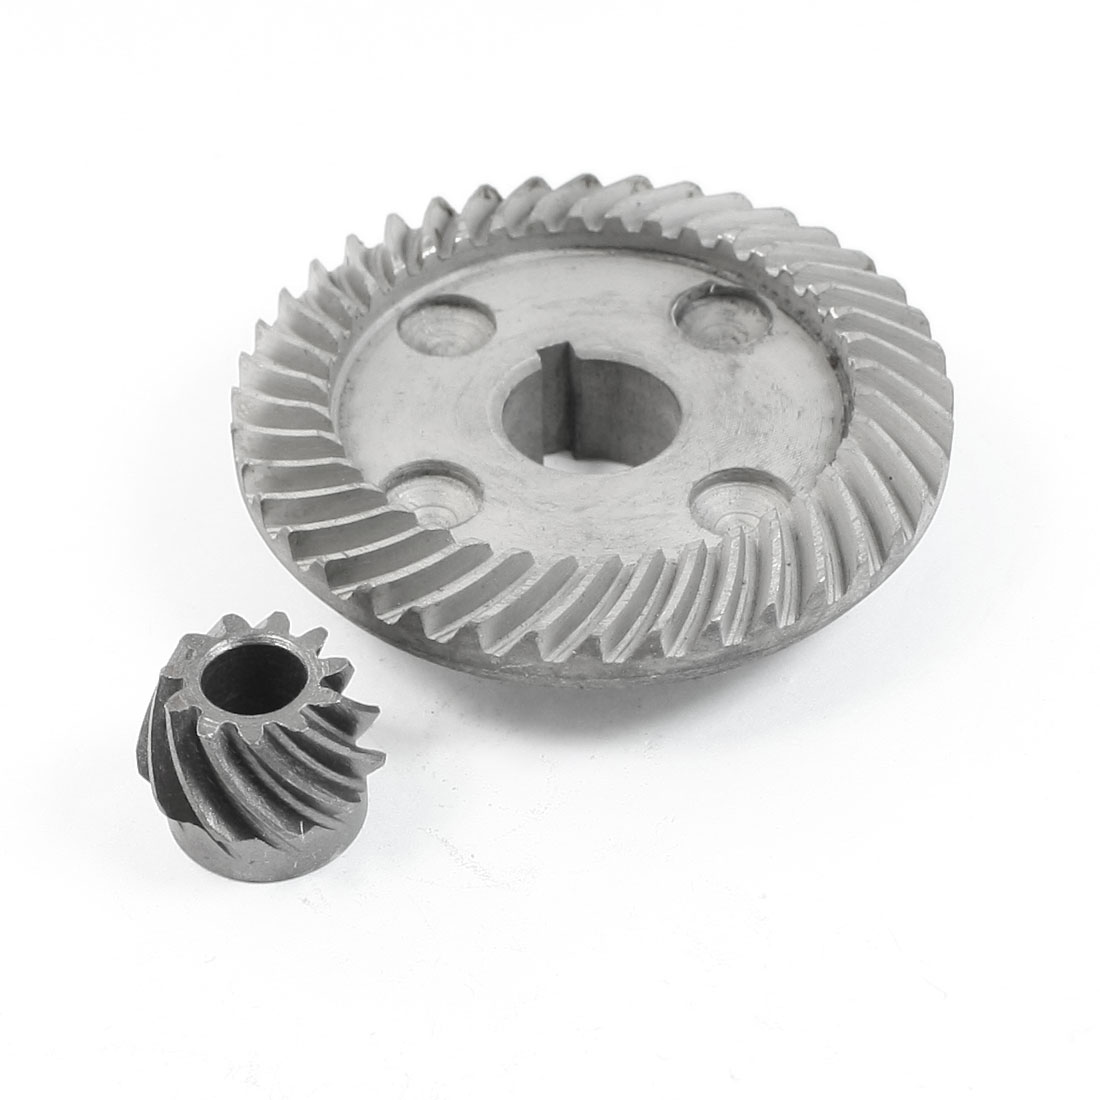 Replacement Spiral Bevel Gear Pinion Set for Hitachi 150 Angle Grinder